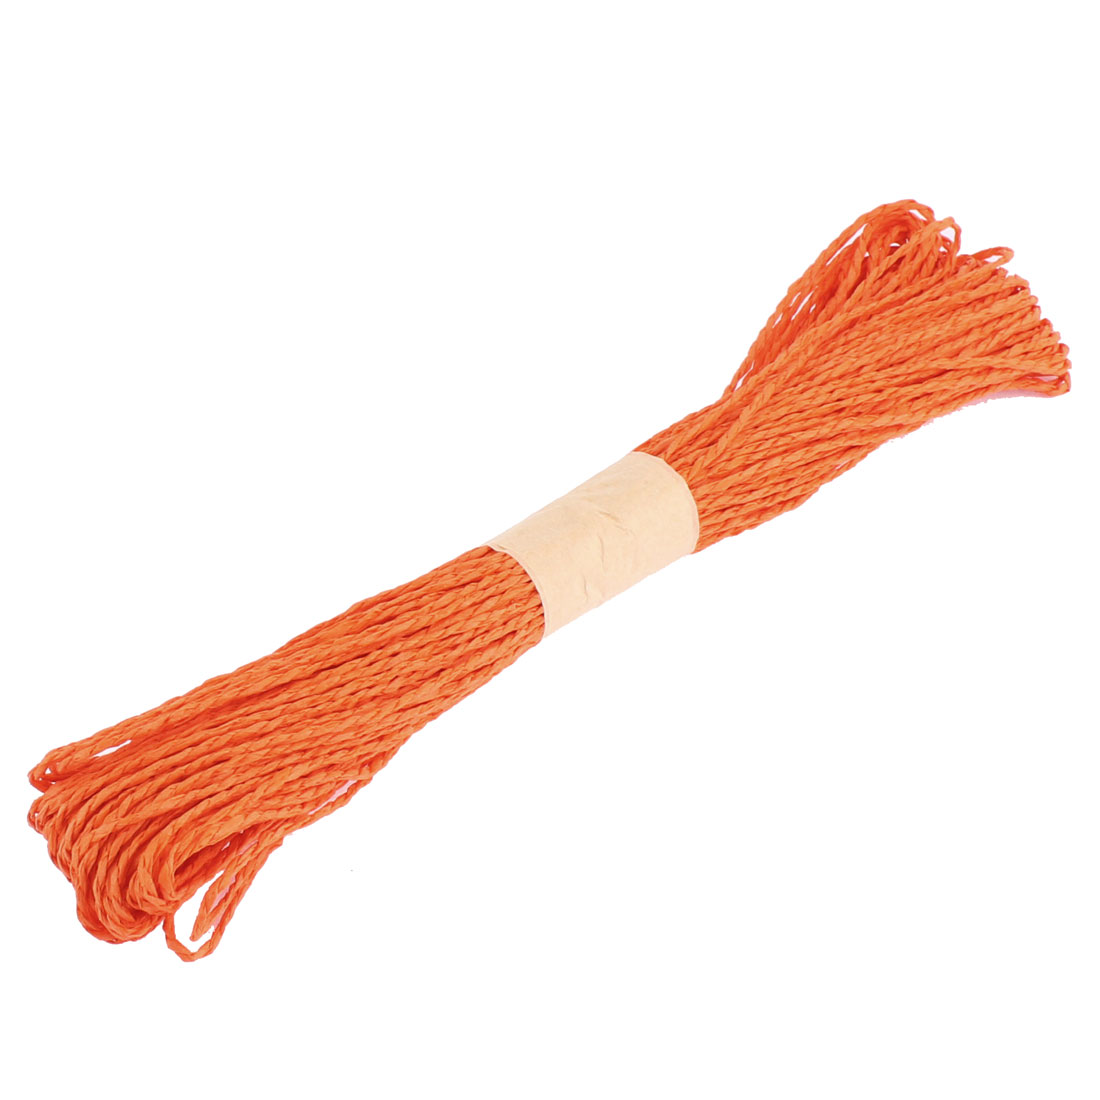 Paper Raffia Cord Ribbon Gift Wrap Craft Pack Rope Strings Orange